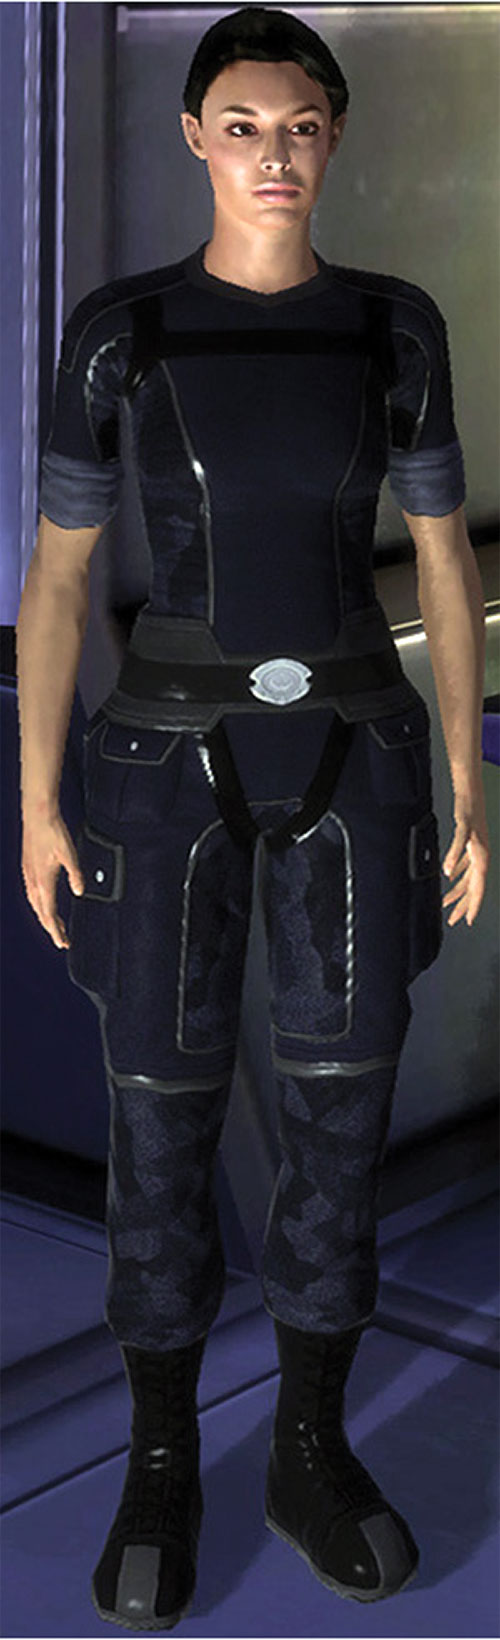 Ashley Williams in Mass Effect 1 - in blue uniform